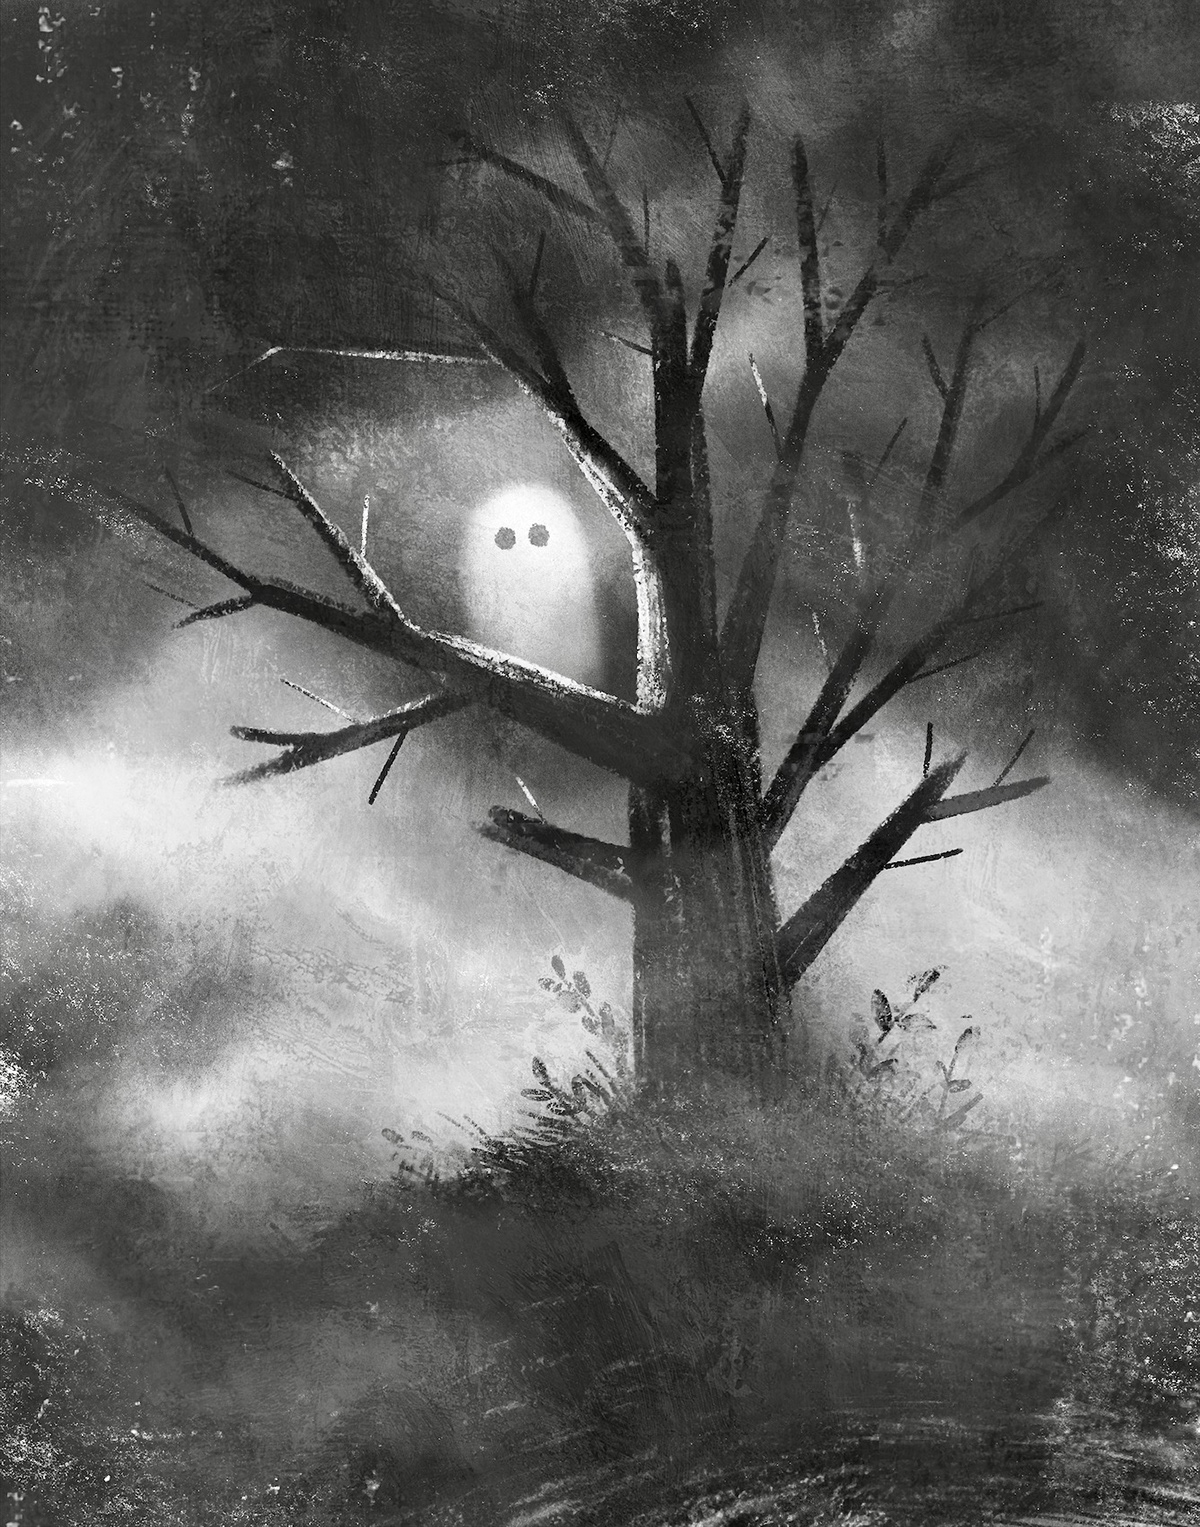 Image may contain: fog, black and white and drawing